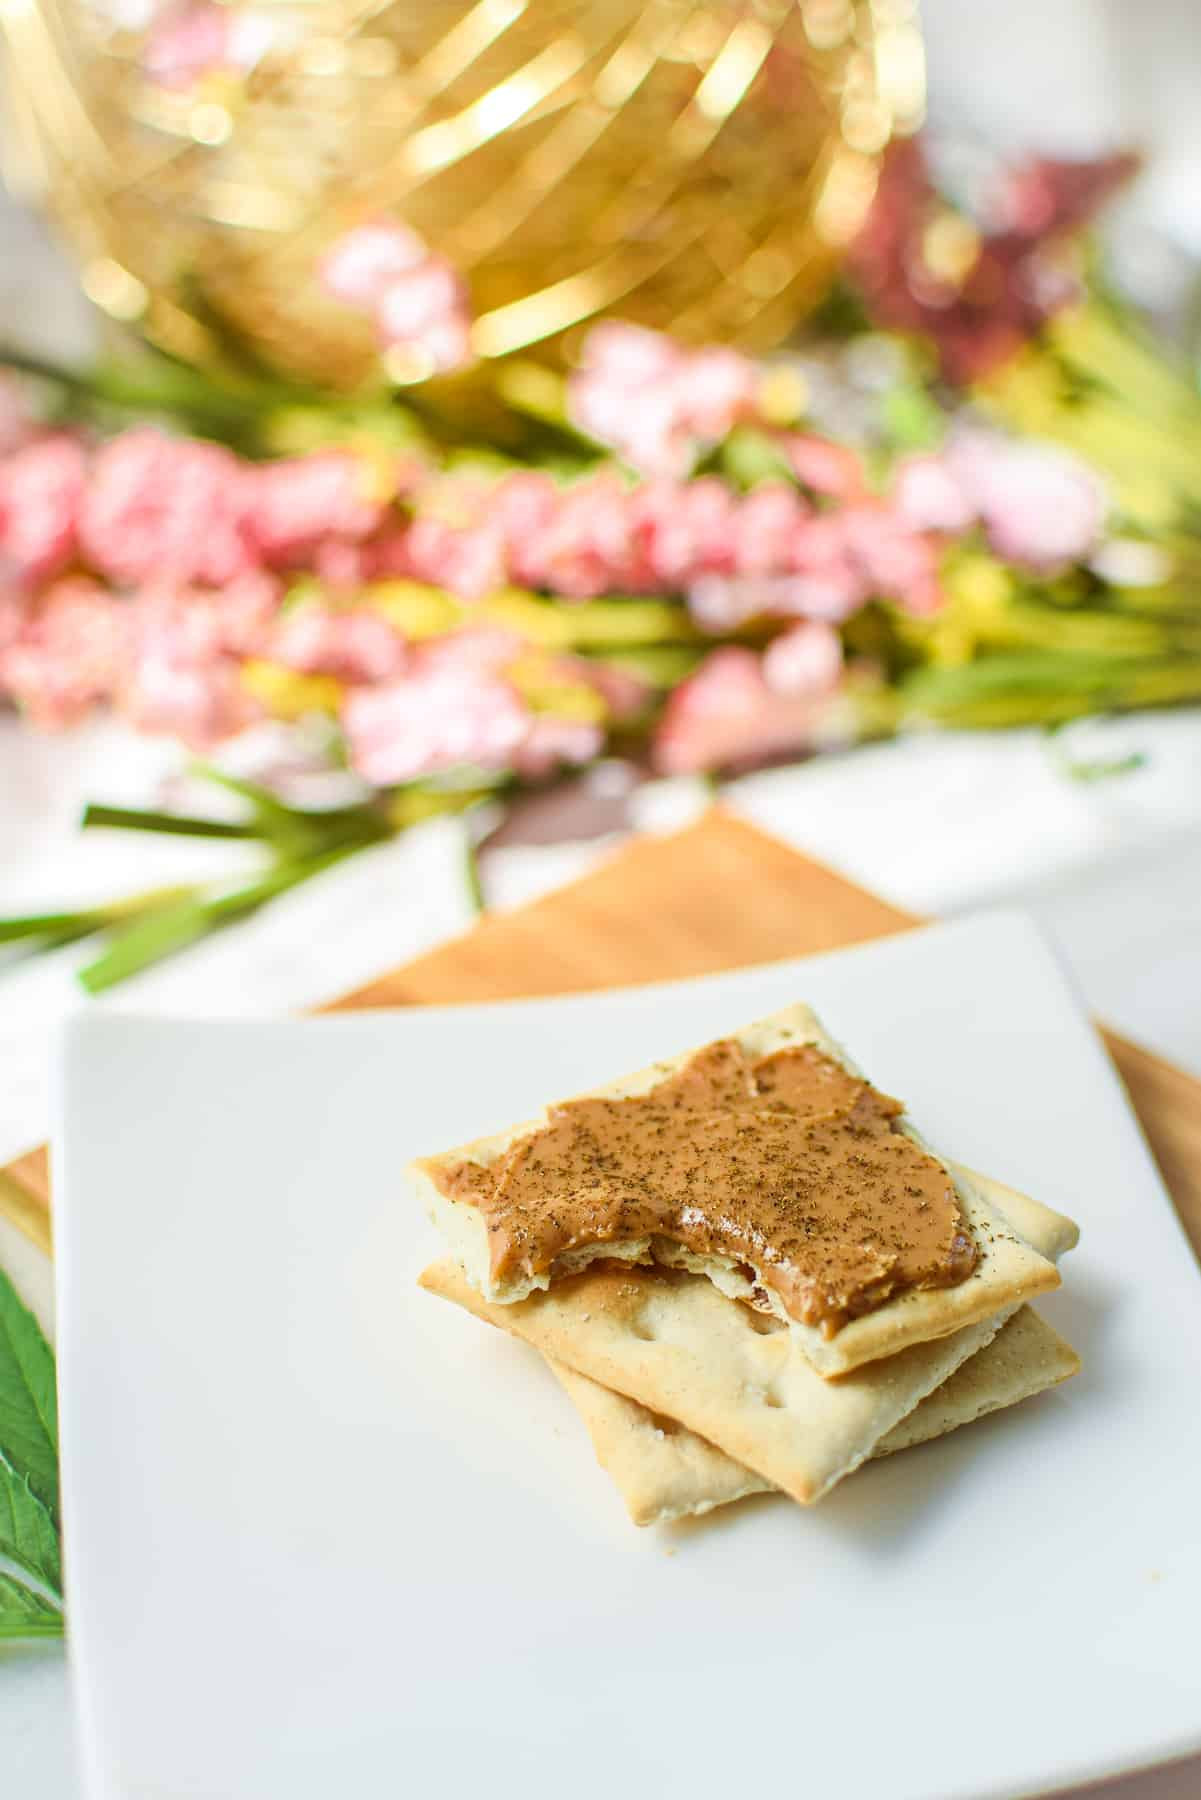 A picture of cannabis firecrackers, peanut butter and cannabis on top of a saltine cracker